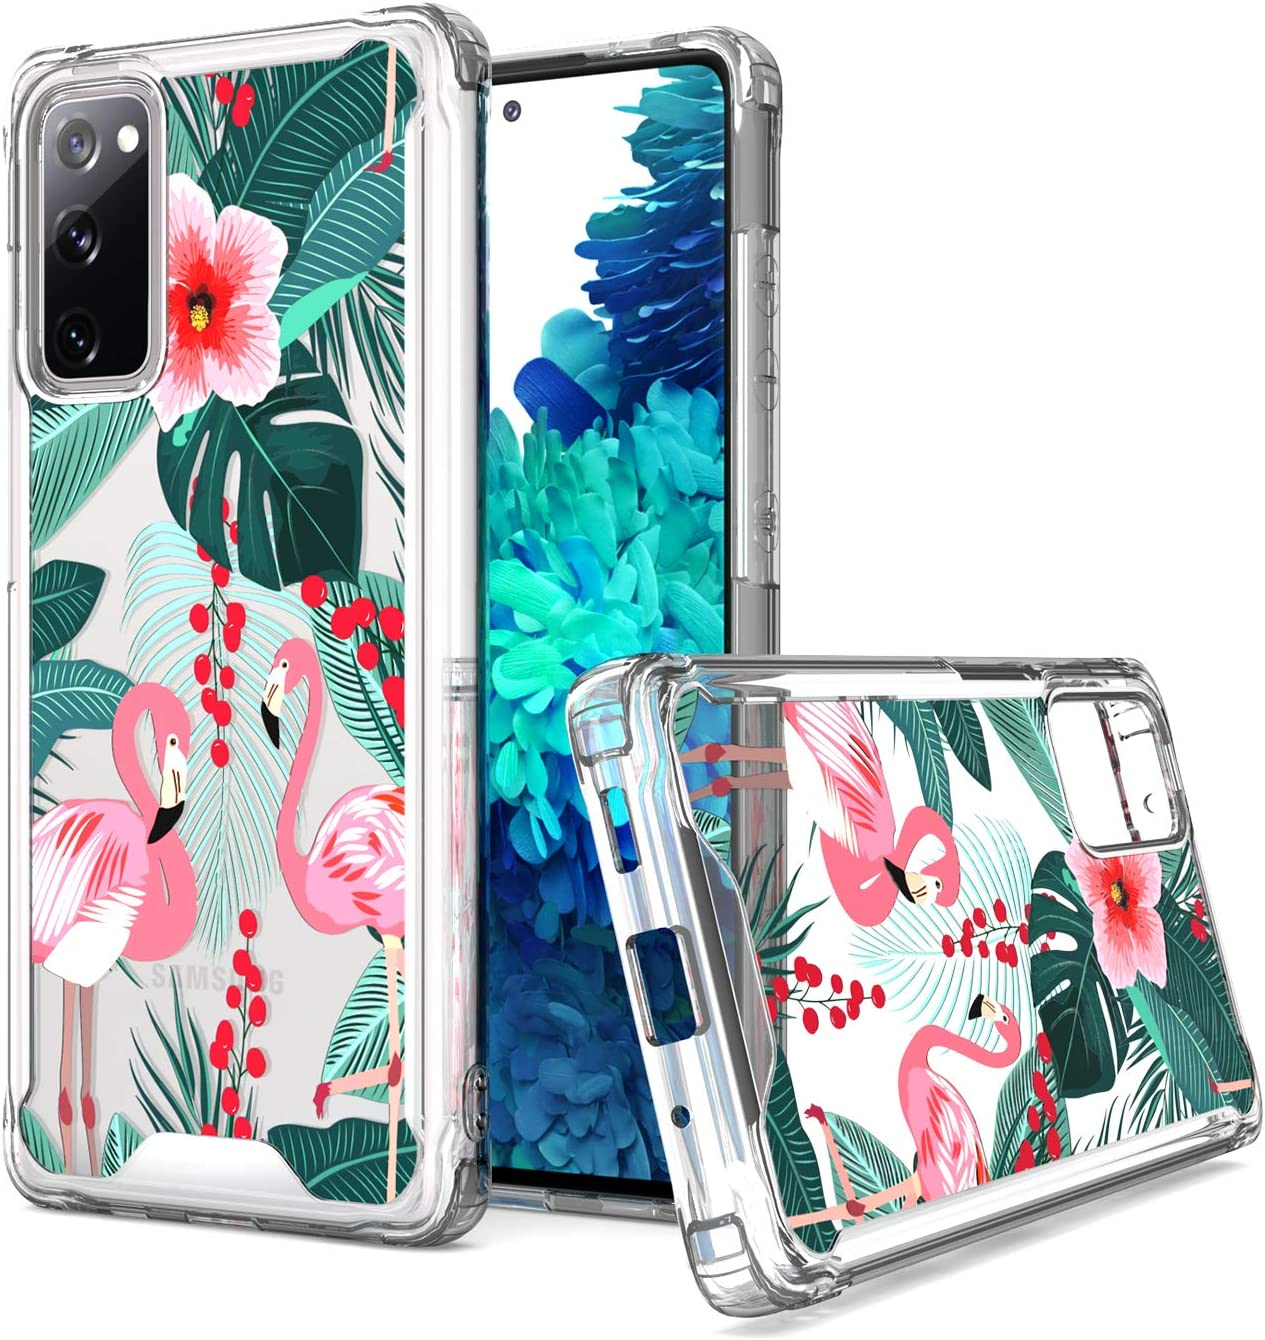 Special price for a limited time KWEICASE Cell Phone Case for Samsung OFFicial shop S20 Edition Sam Galaxy Fan